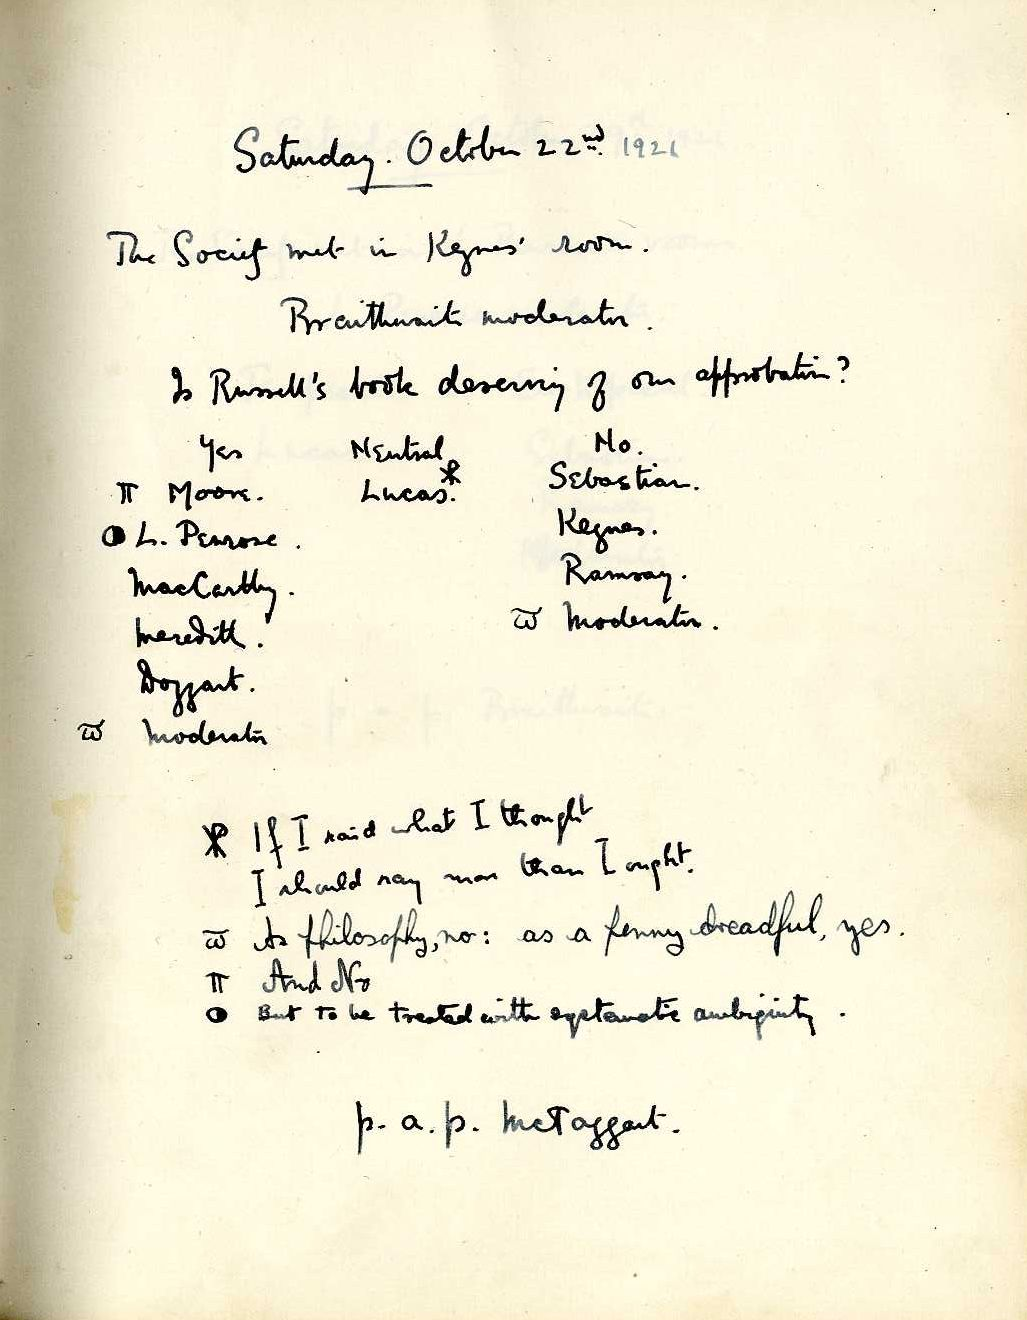 Minutes of a meeting in which Braithwaite asked 'Is Russell's book deserving of our approbation?' [KCAS/39/1/16, 22 October 1921]